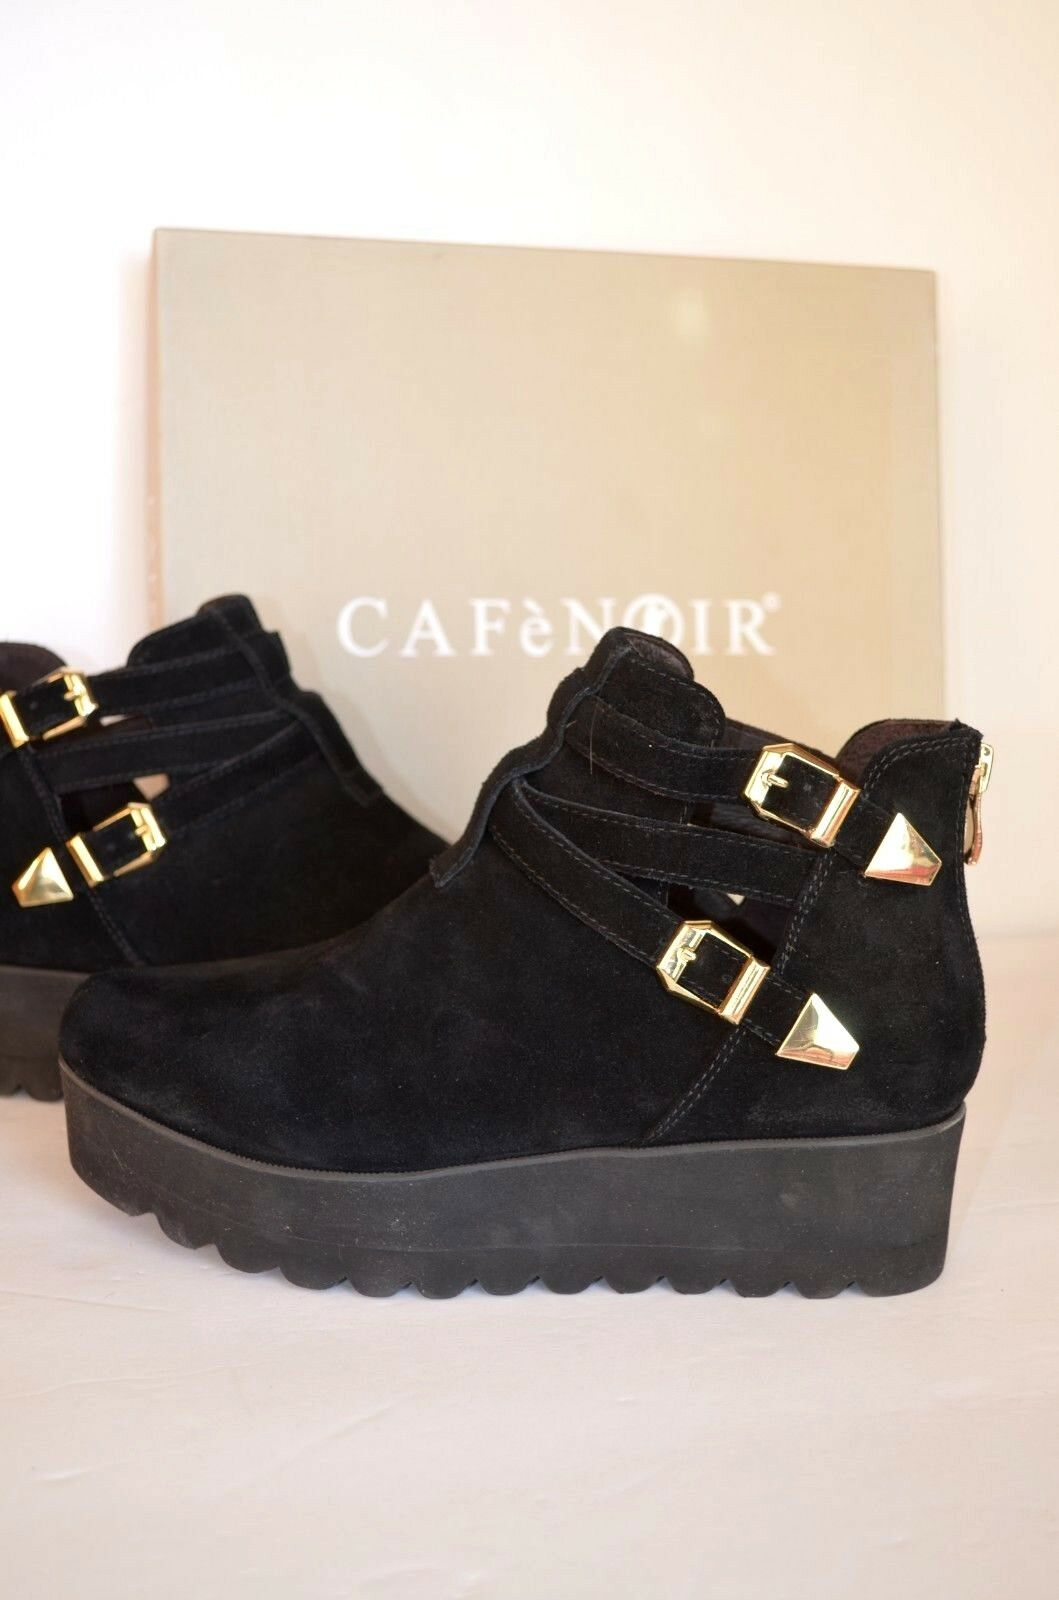 donna Ankle stivali Leather Wedge From  Chelsea Platform  Gomma Sole S 6  negozio online